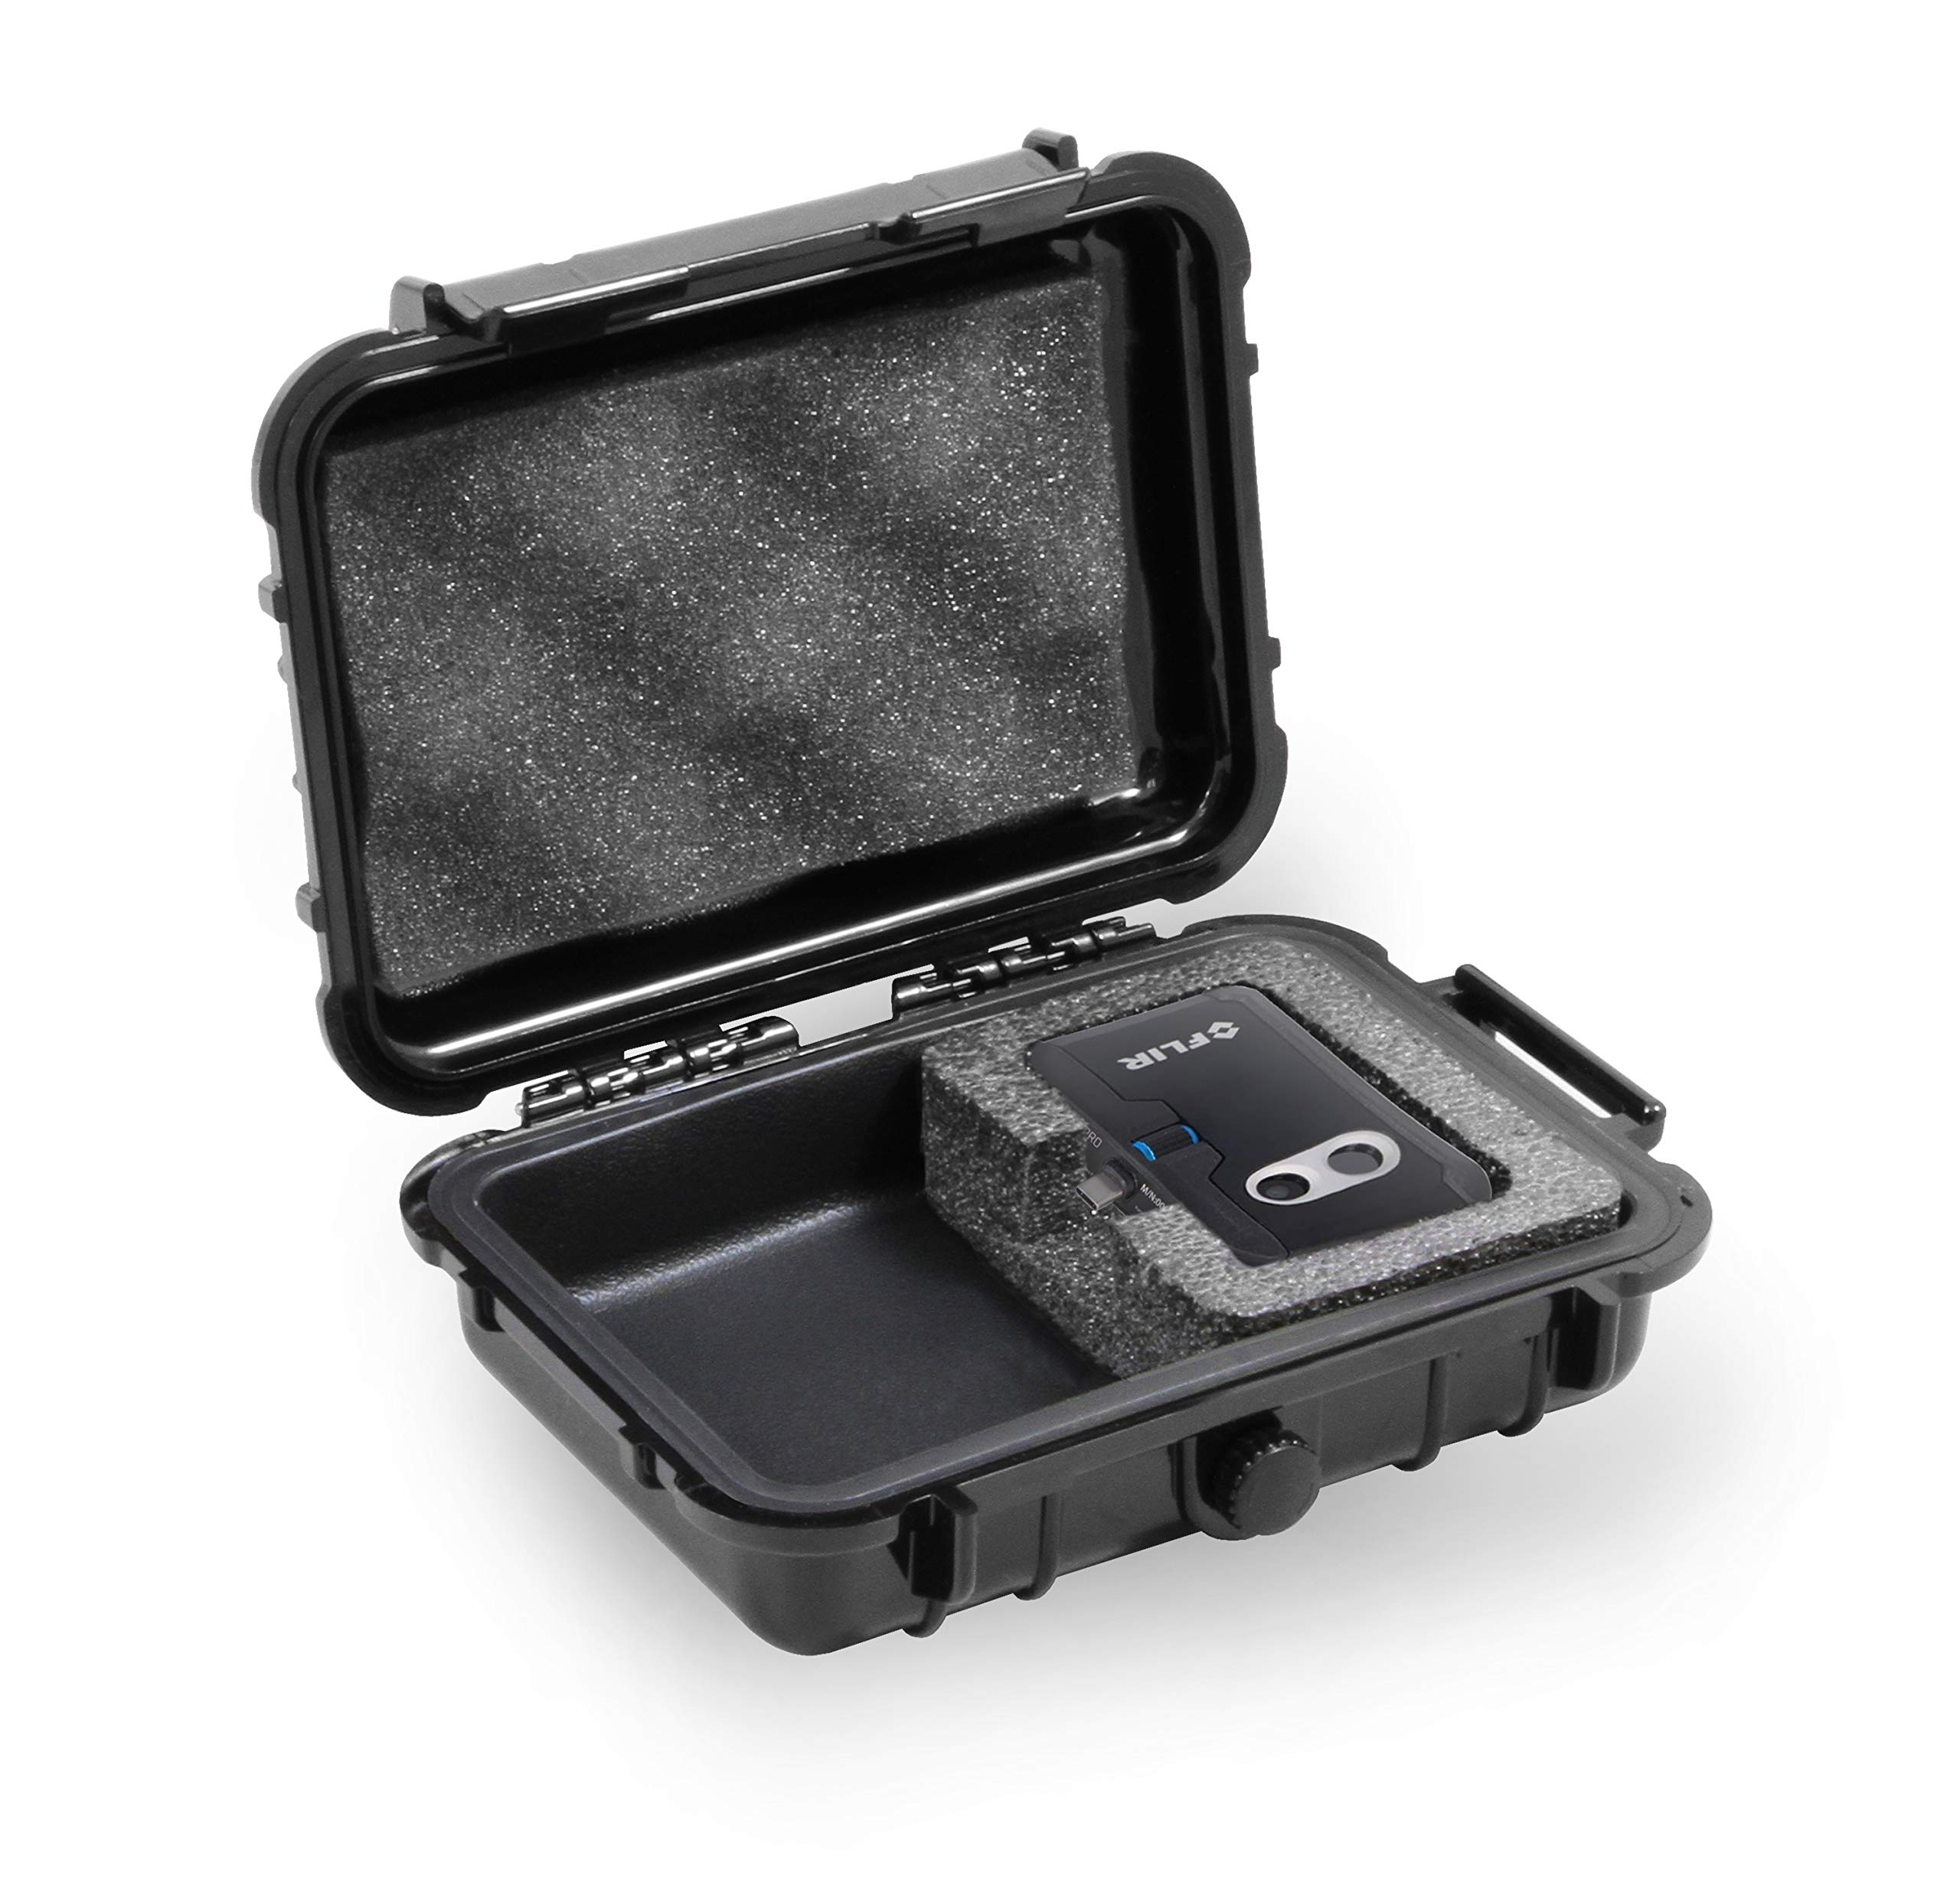 CASEMATIX Waterproof Case Fits Flir ONE PRO Thermal Imager for iOS iPhone, Android Smartphone, USBC, USB-C and Accessories - Rugged, Impact Resistant